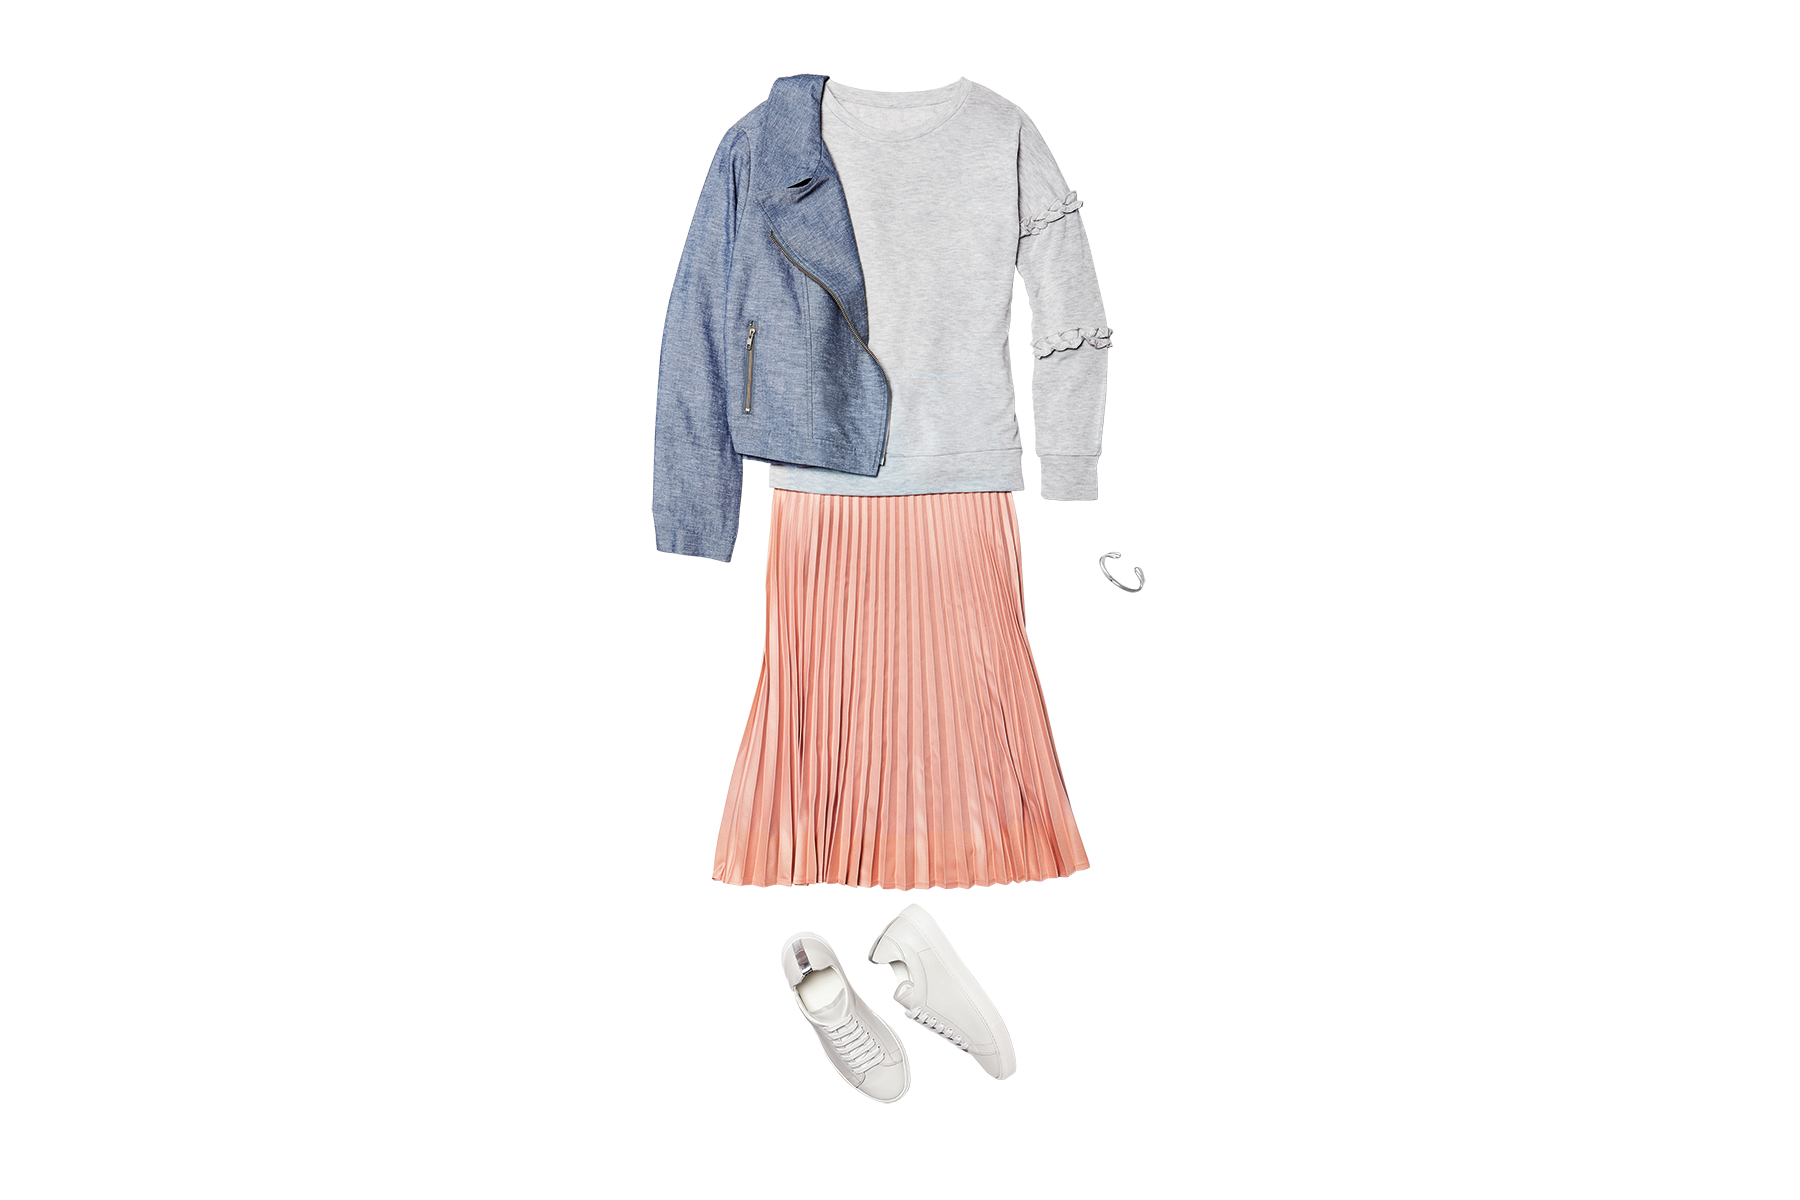 Midi Skirt + Sneakers + Sweatshirt (0418ESS)